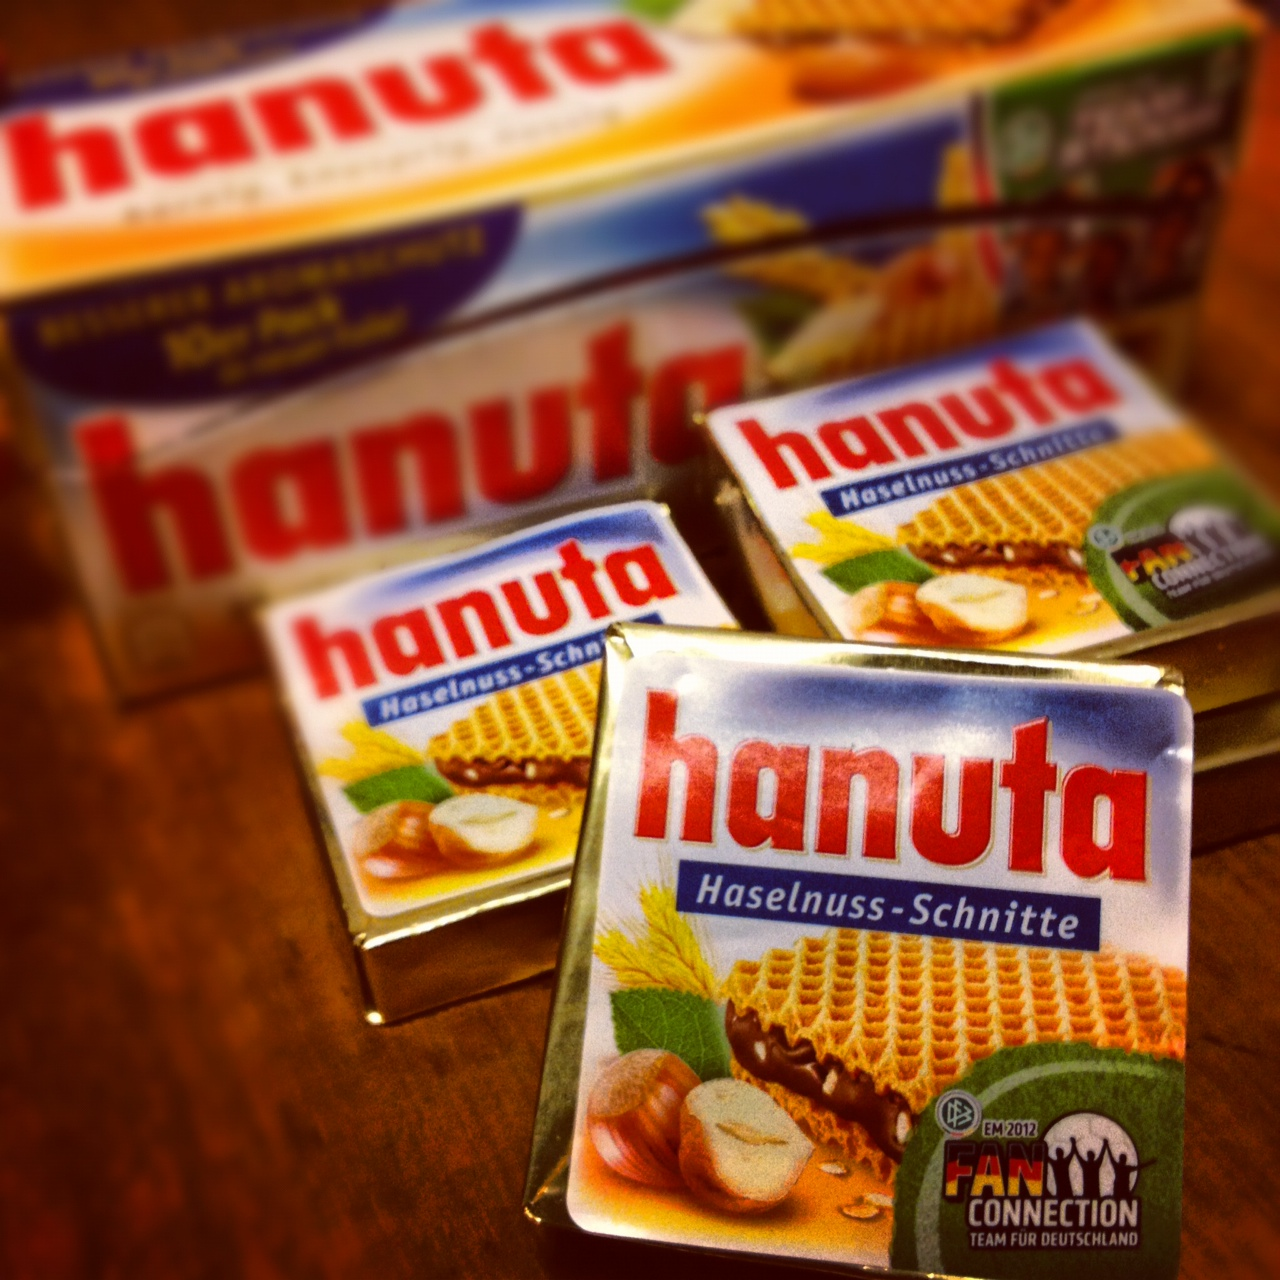 HANUTA FERERO BEST CHOCOLATE WAFER HASELNUSS IN THE WORLD!